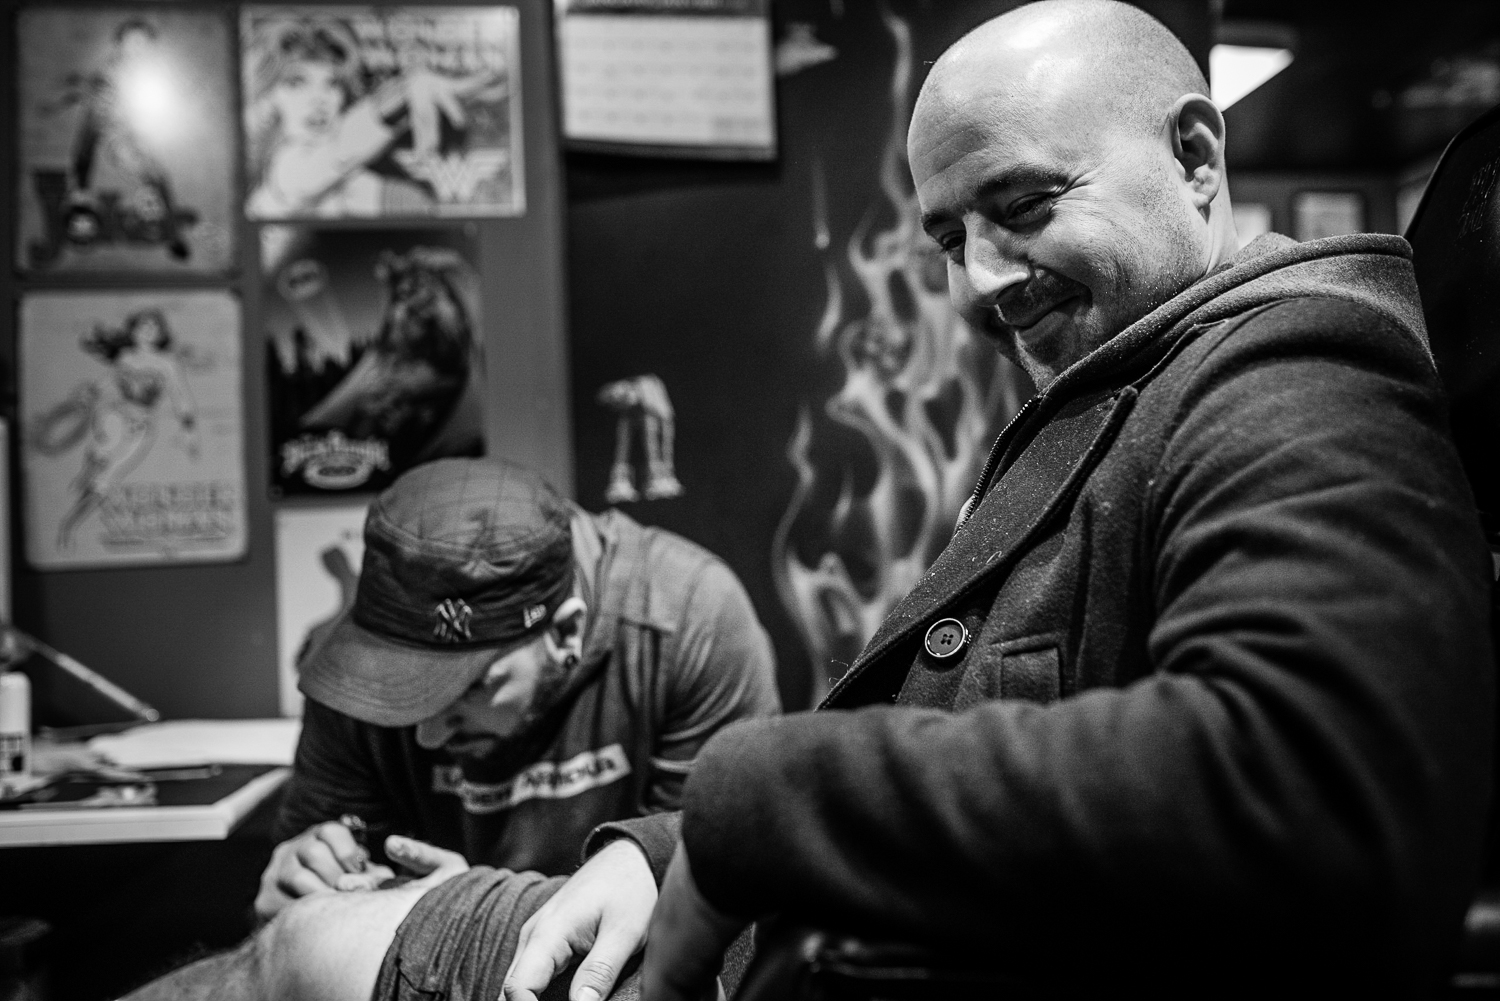 Smiling man getting a tattoo on his knee